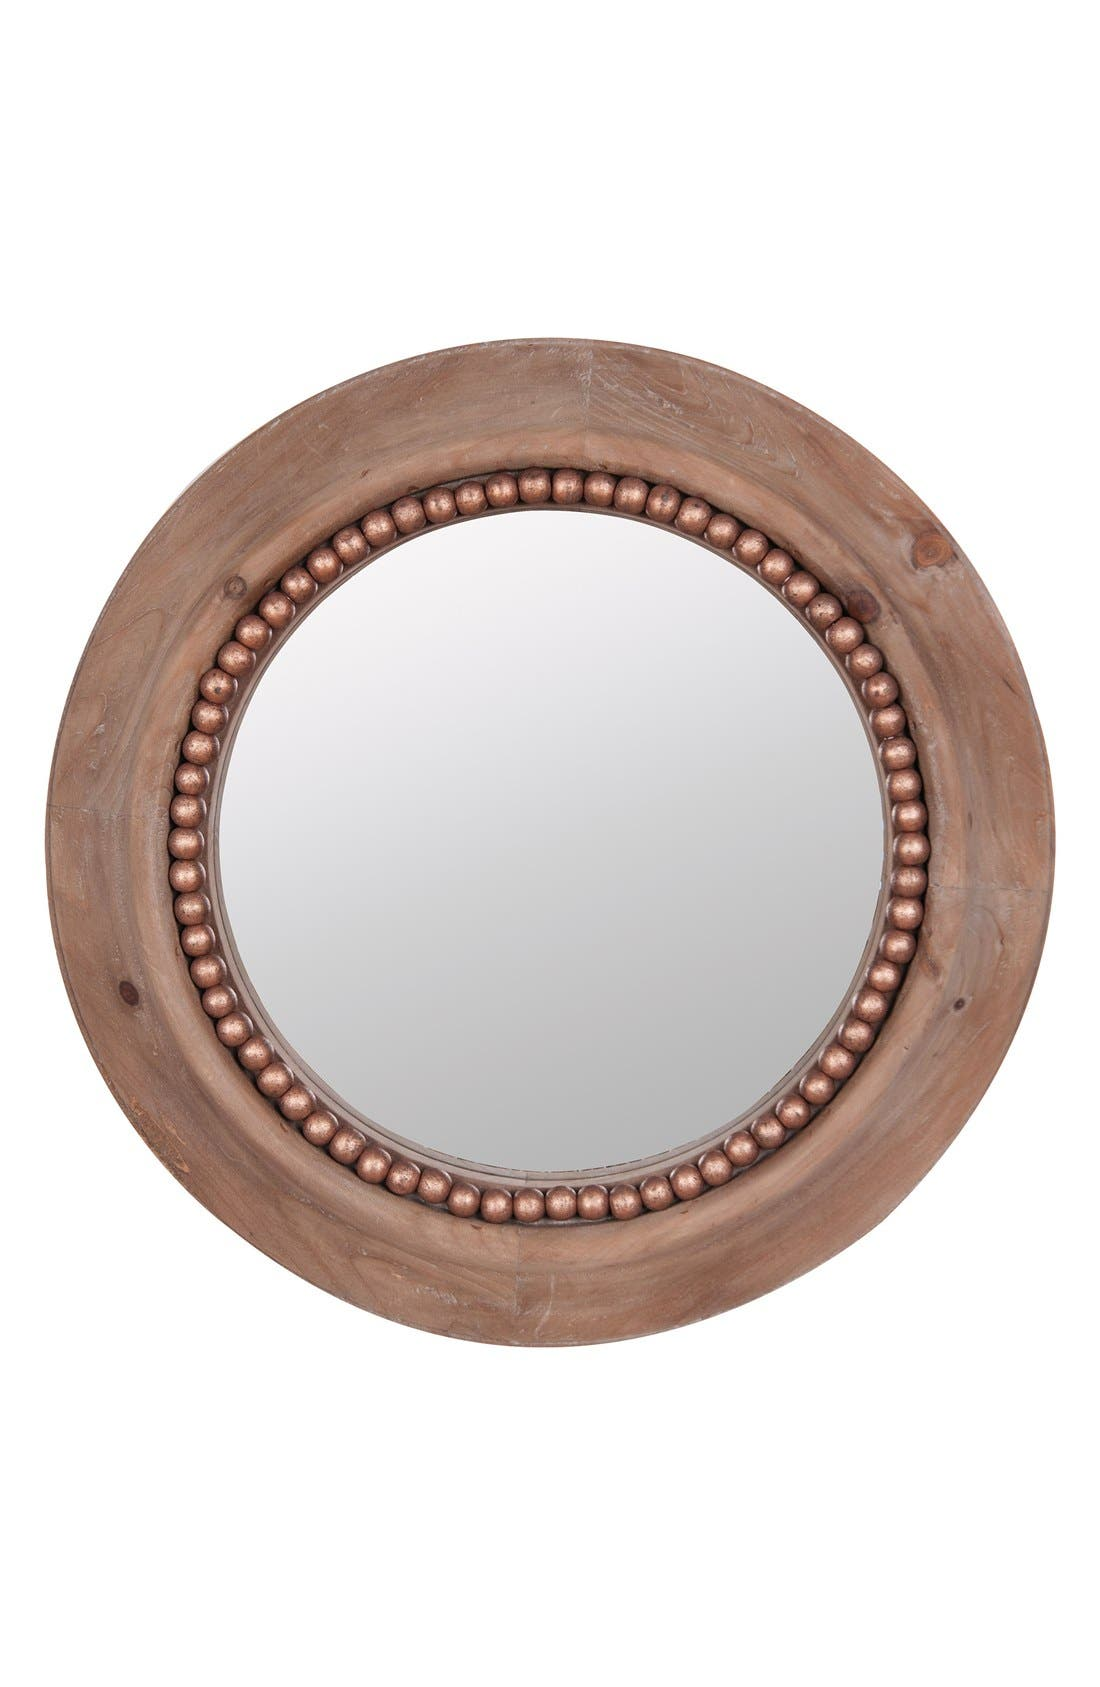 Alternate Image 1 Selected - Foreside Round Beaded Wall Mirror